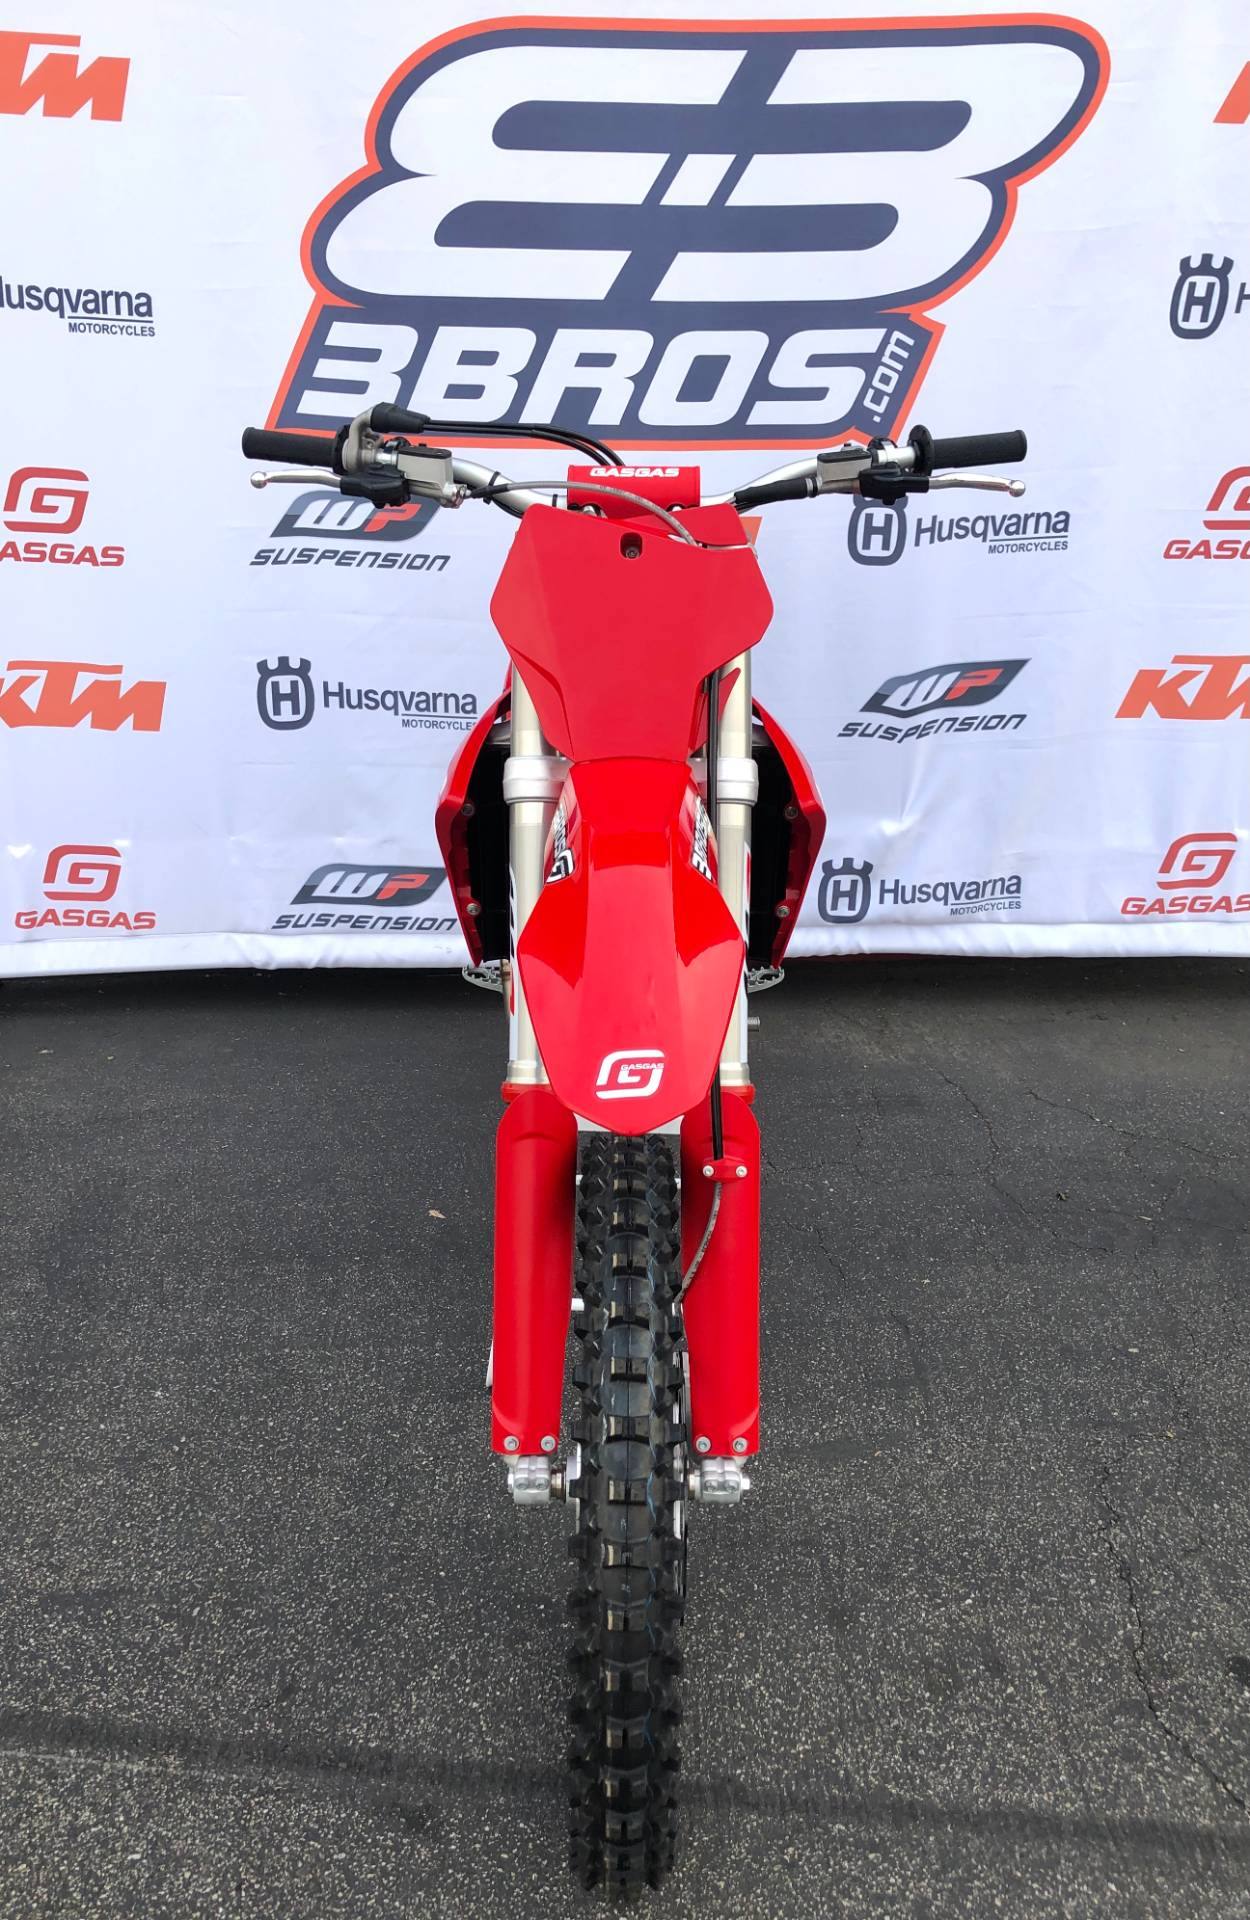 2021 Gas Gas MC 250F in Costa Mesa, California - Photo 5